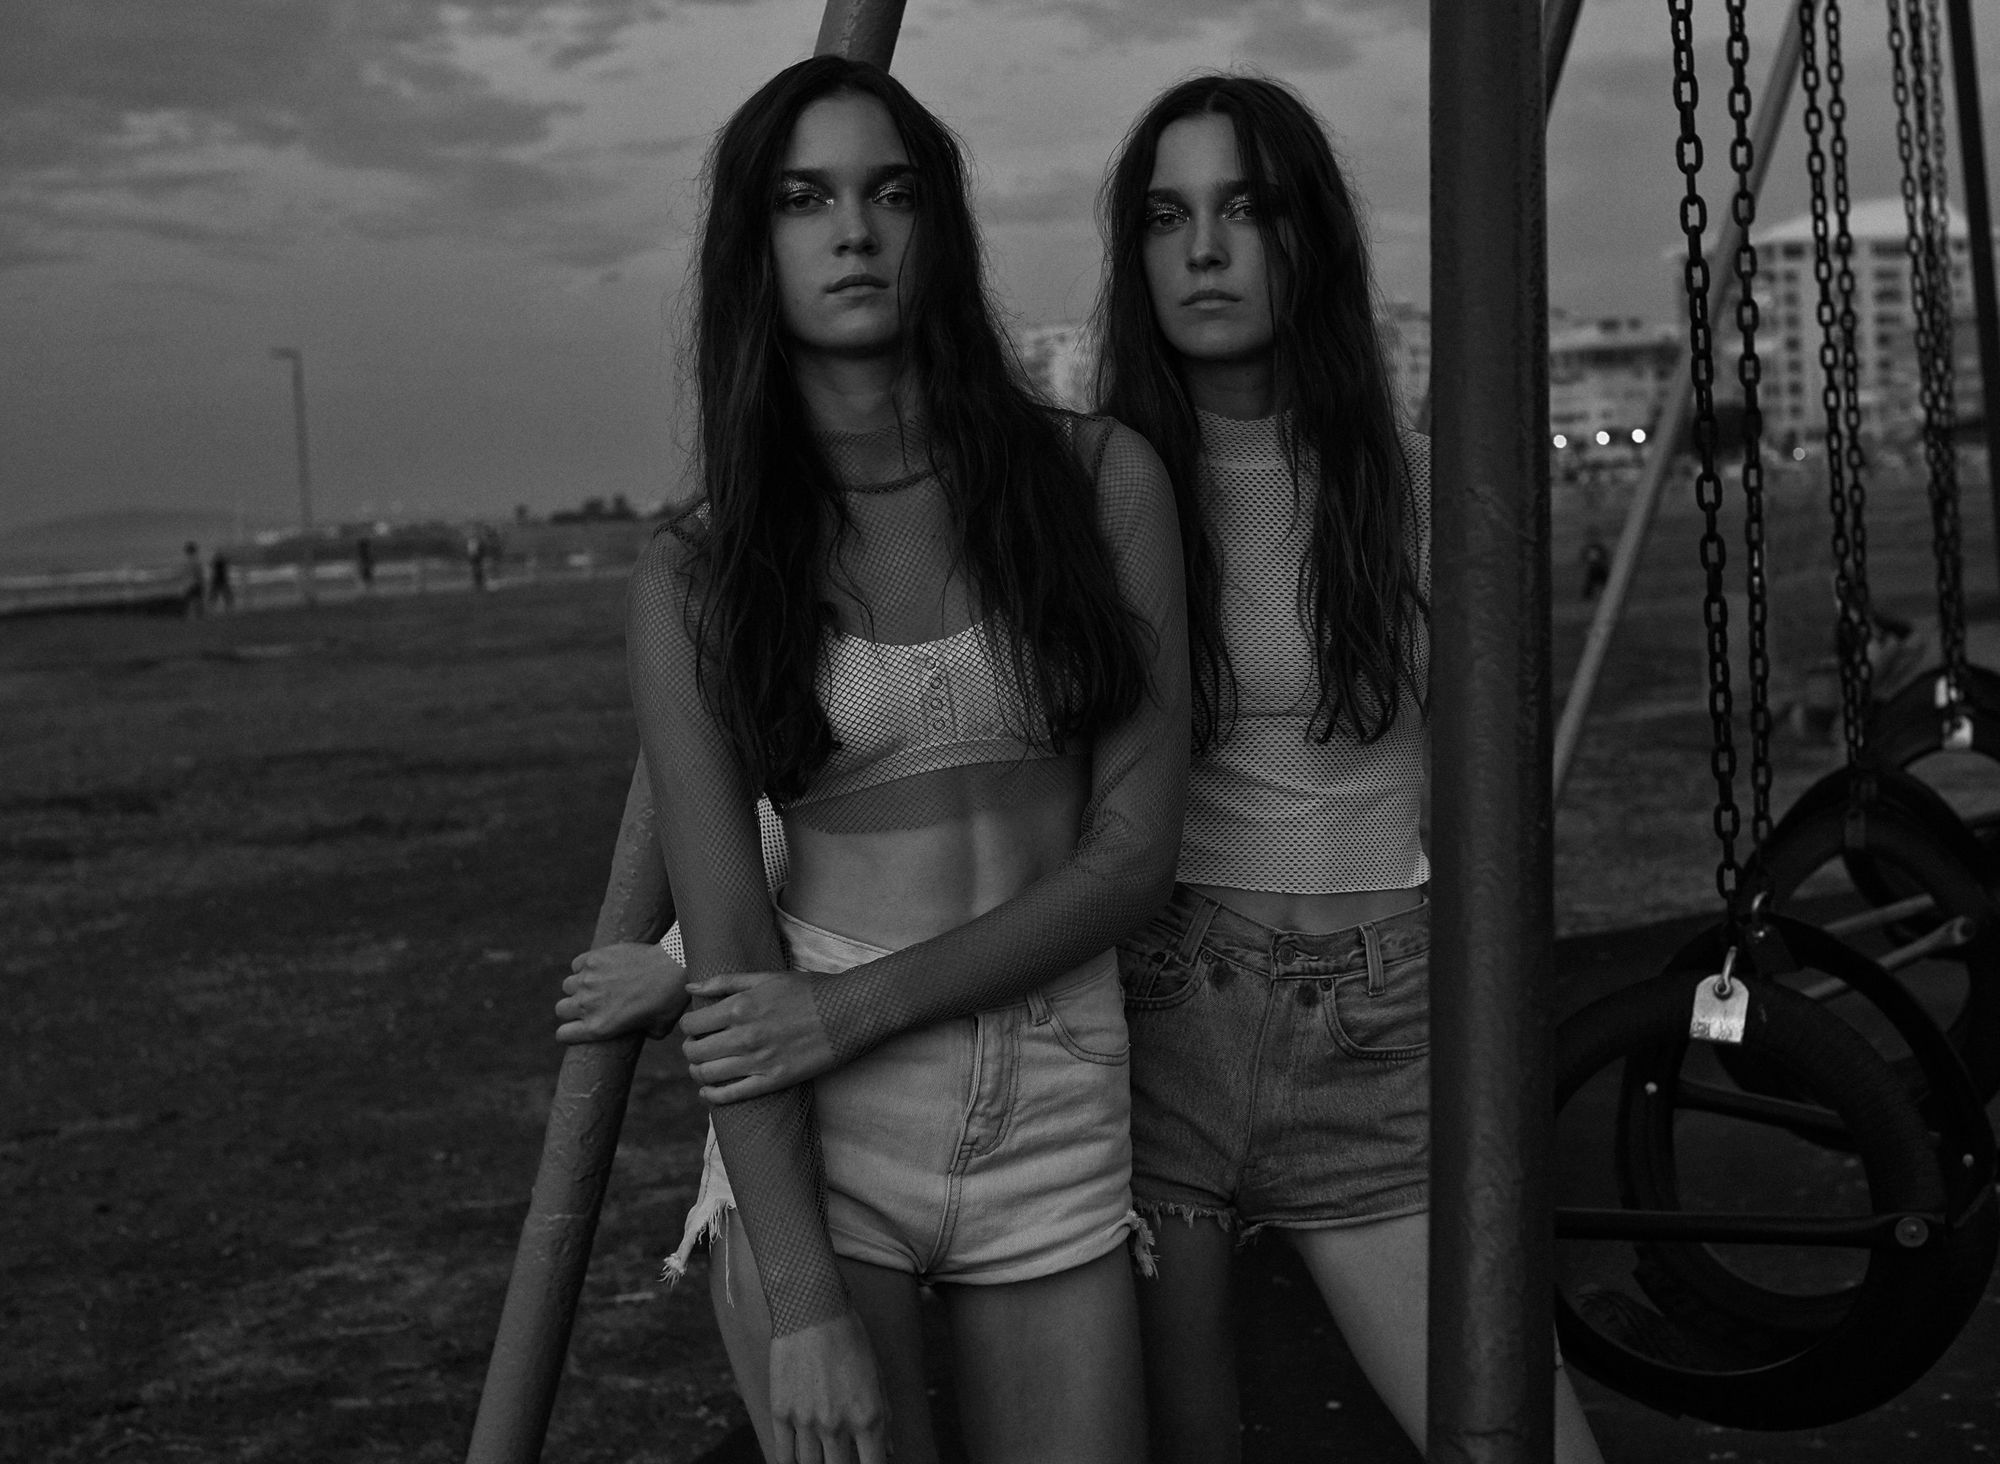 'THE DENIM TWINS' by ROGER WEBER